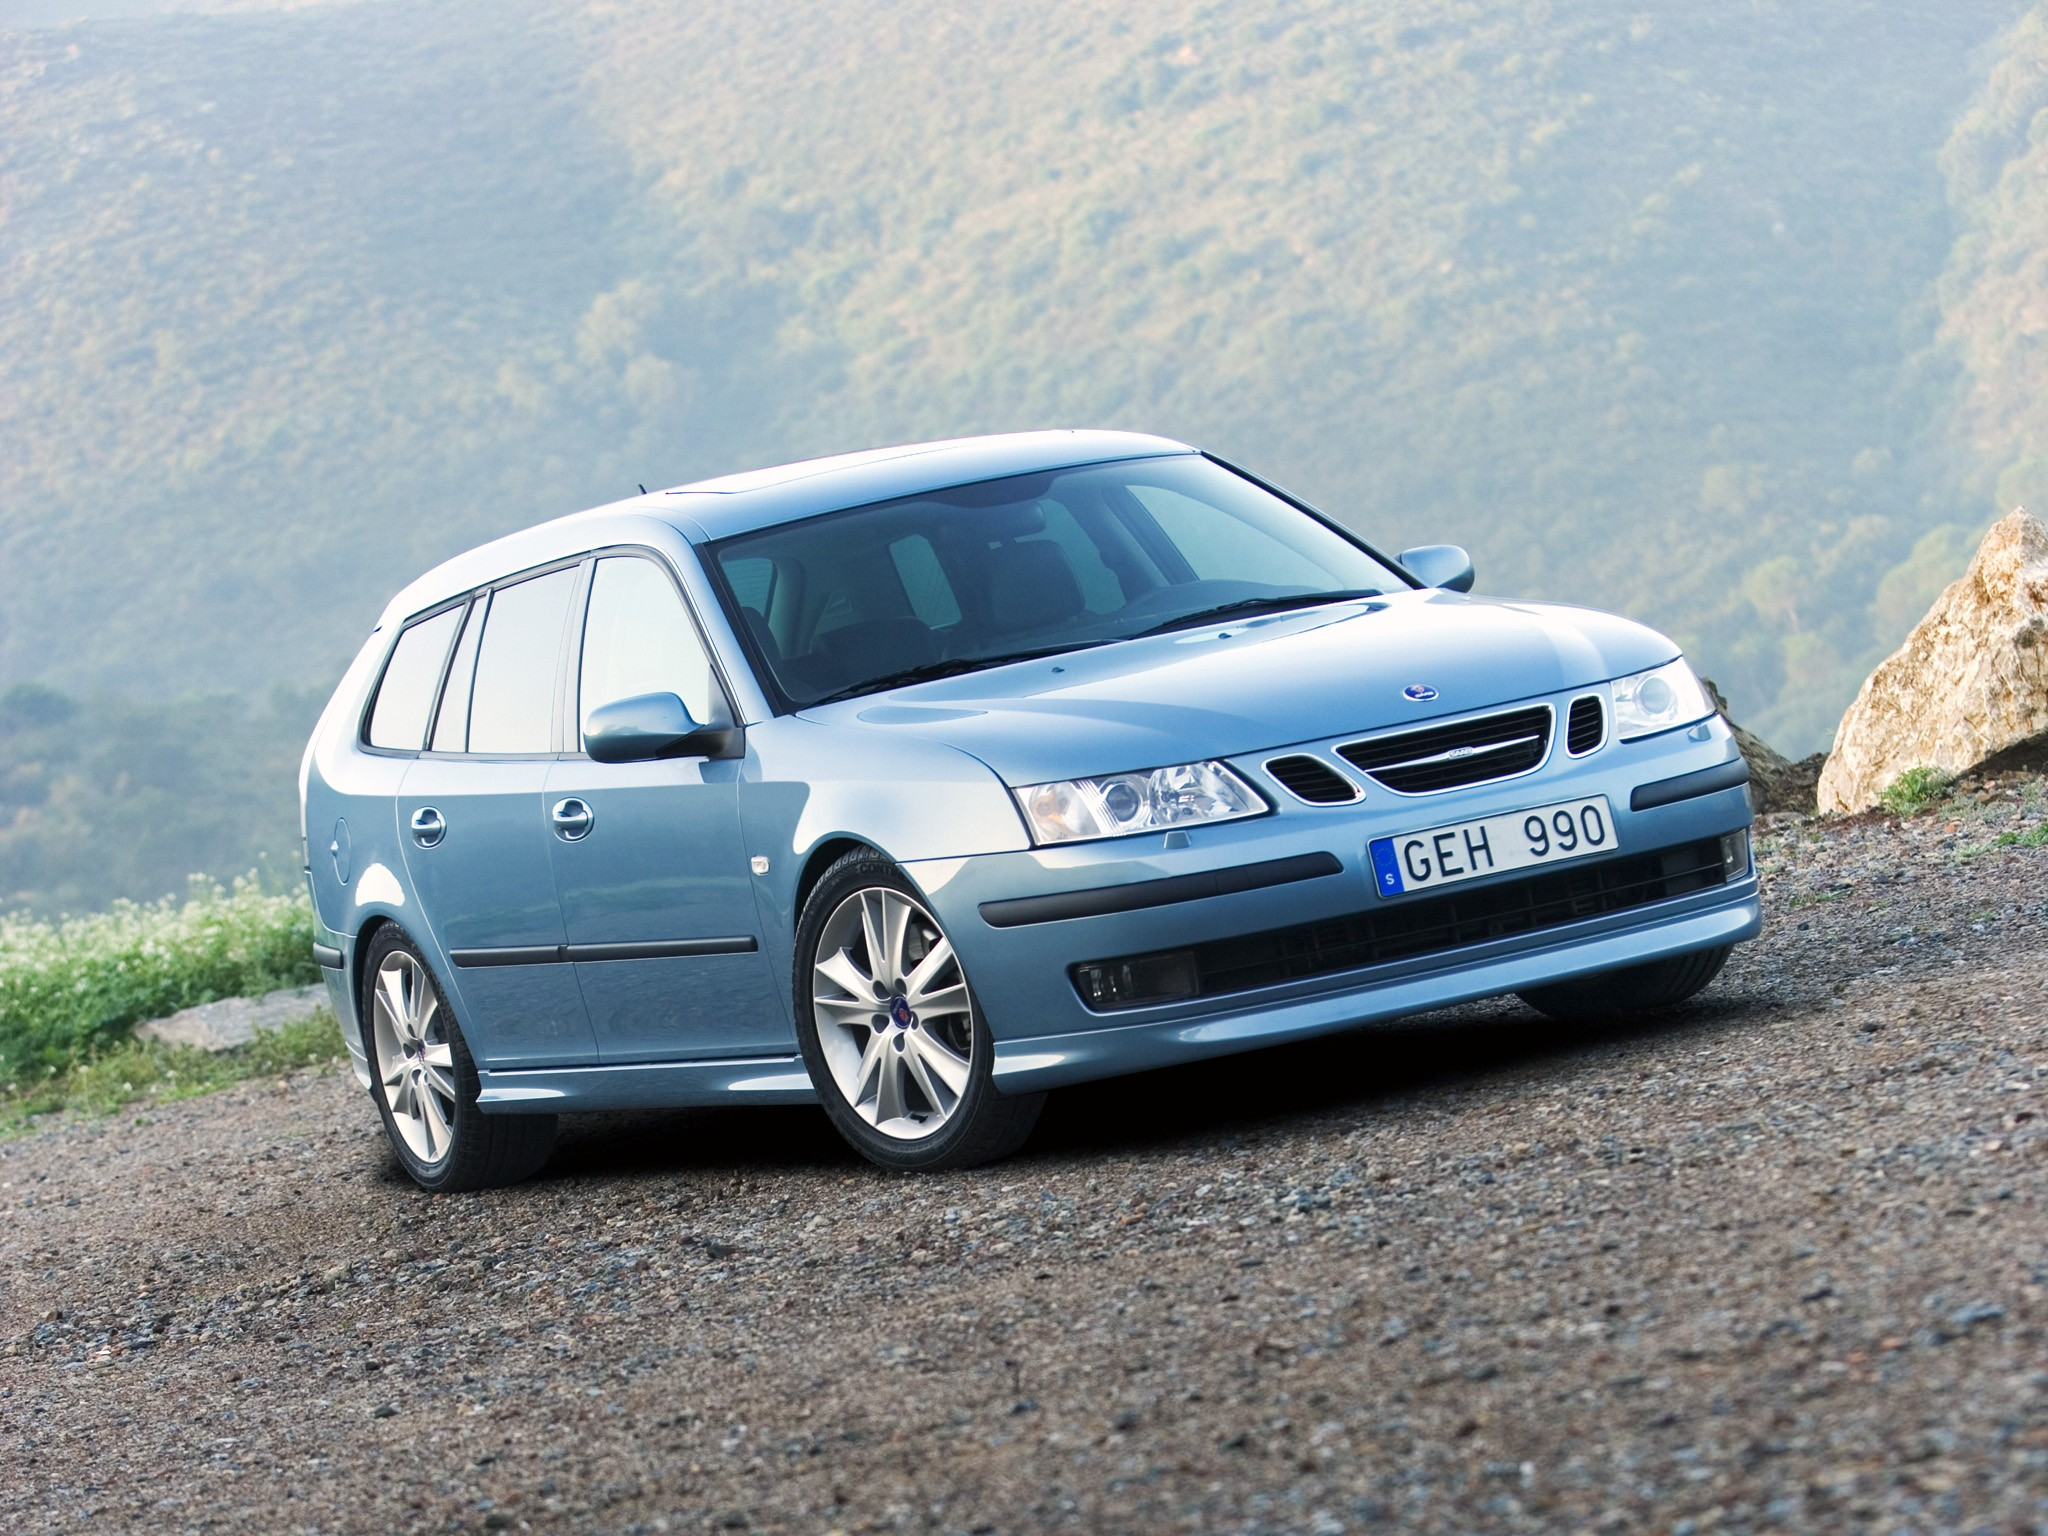 saab 9 3 sportcombi specs 2004 2005 2006 2007 2008 autoevolution. Black Bedroom Furniture Sets. Home Design Ideas